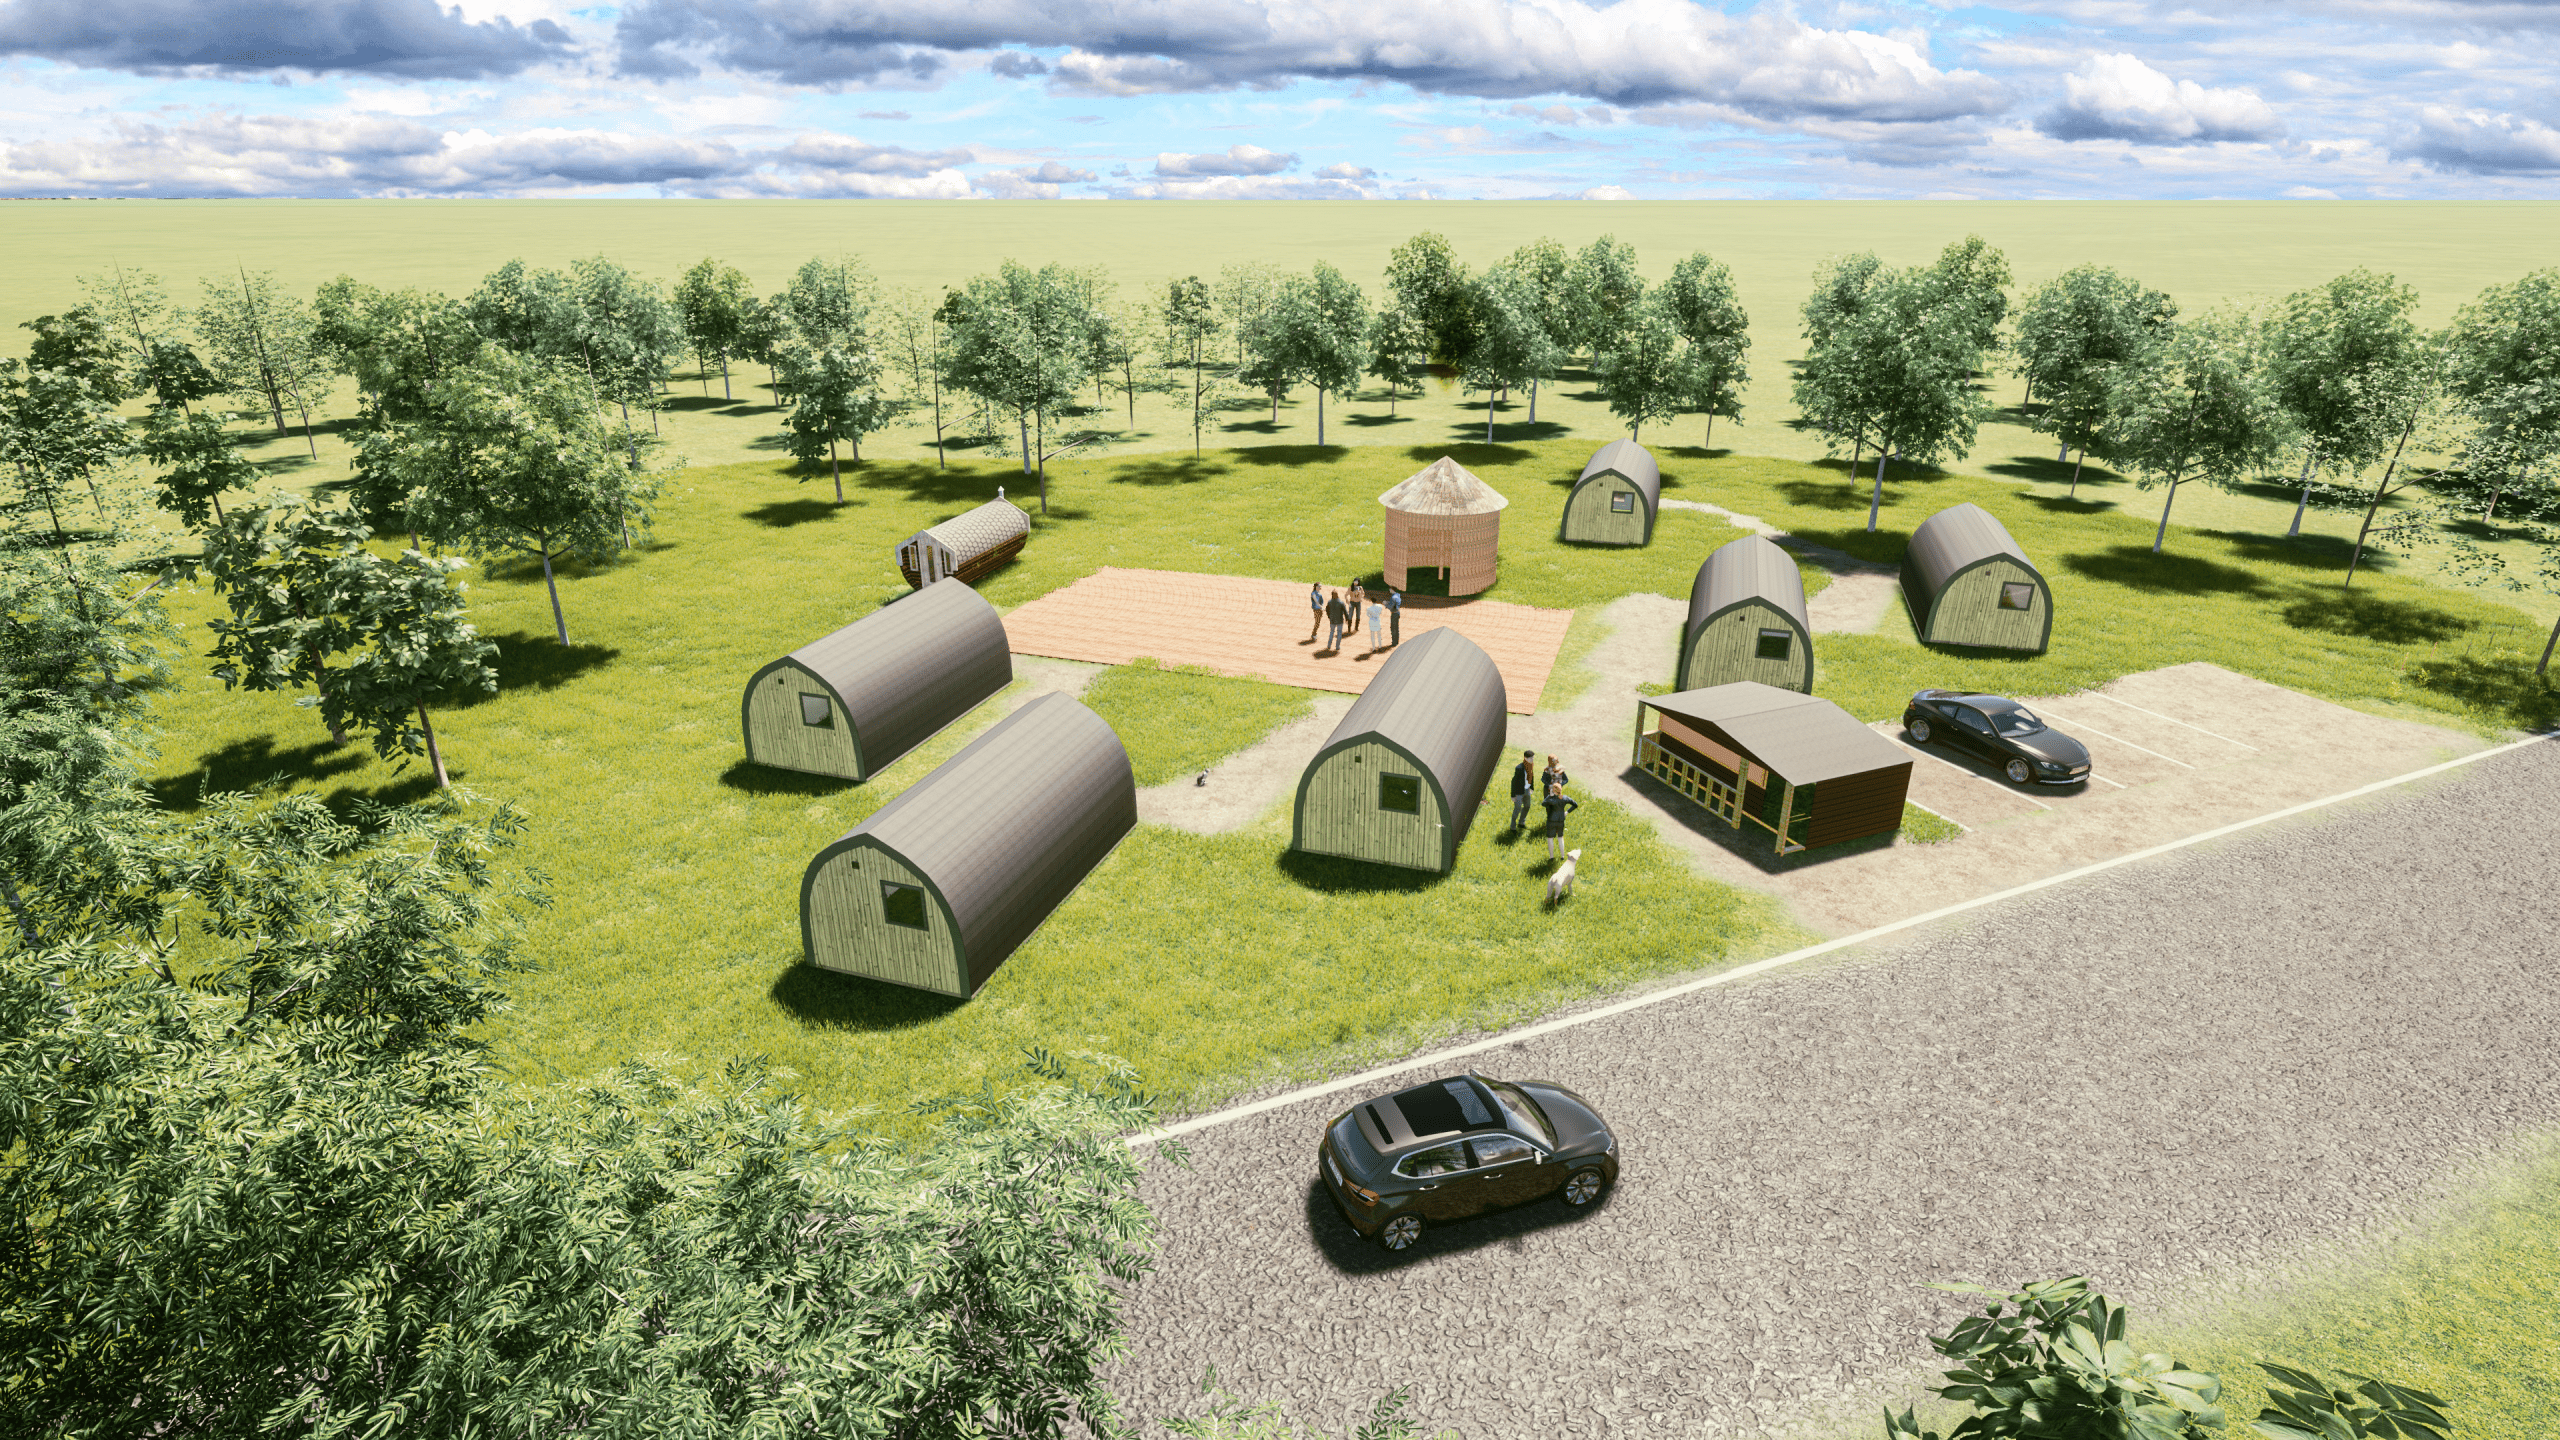 How to Solve Issues That Come Up When Starting a Glamping Business